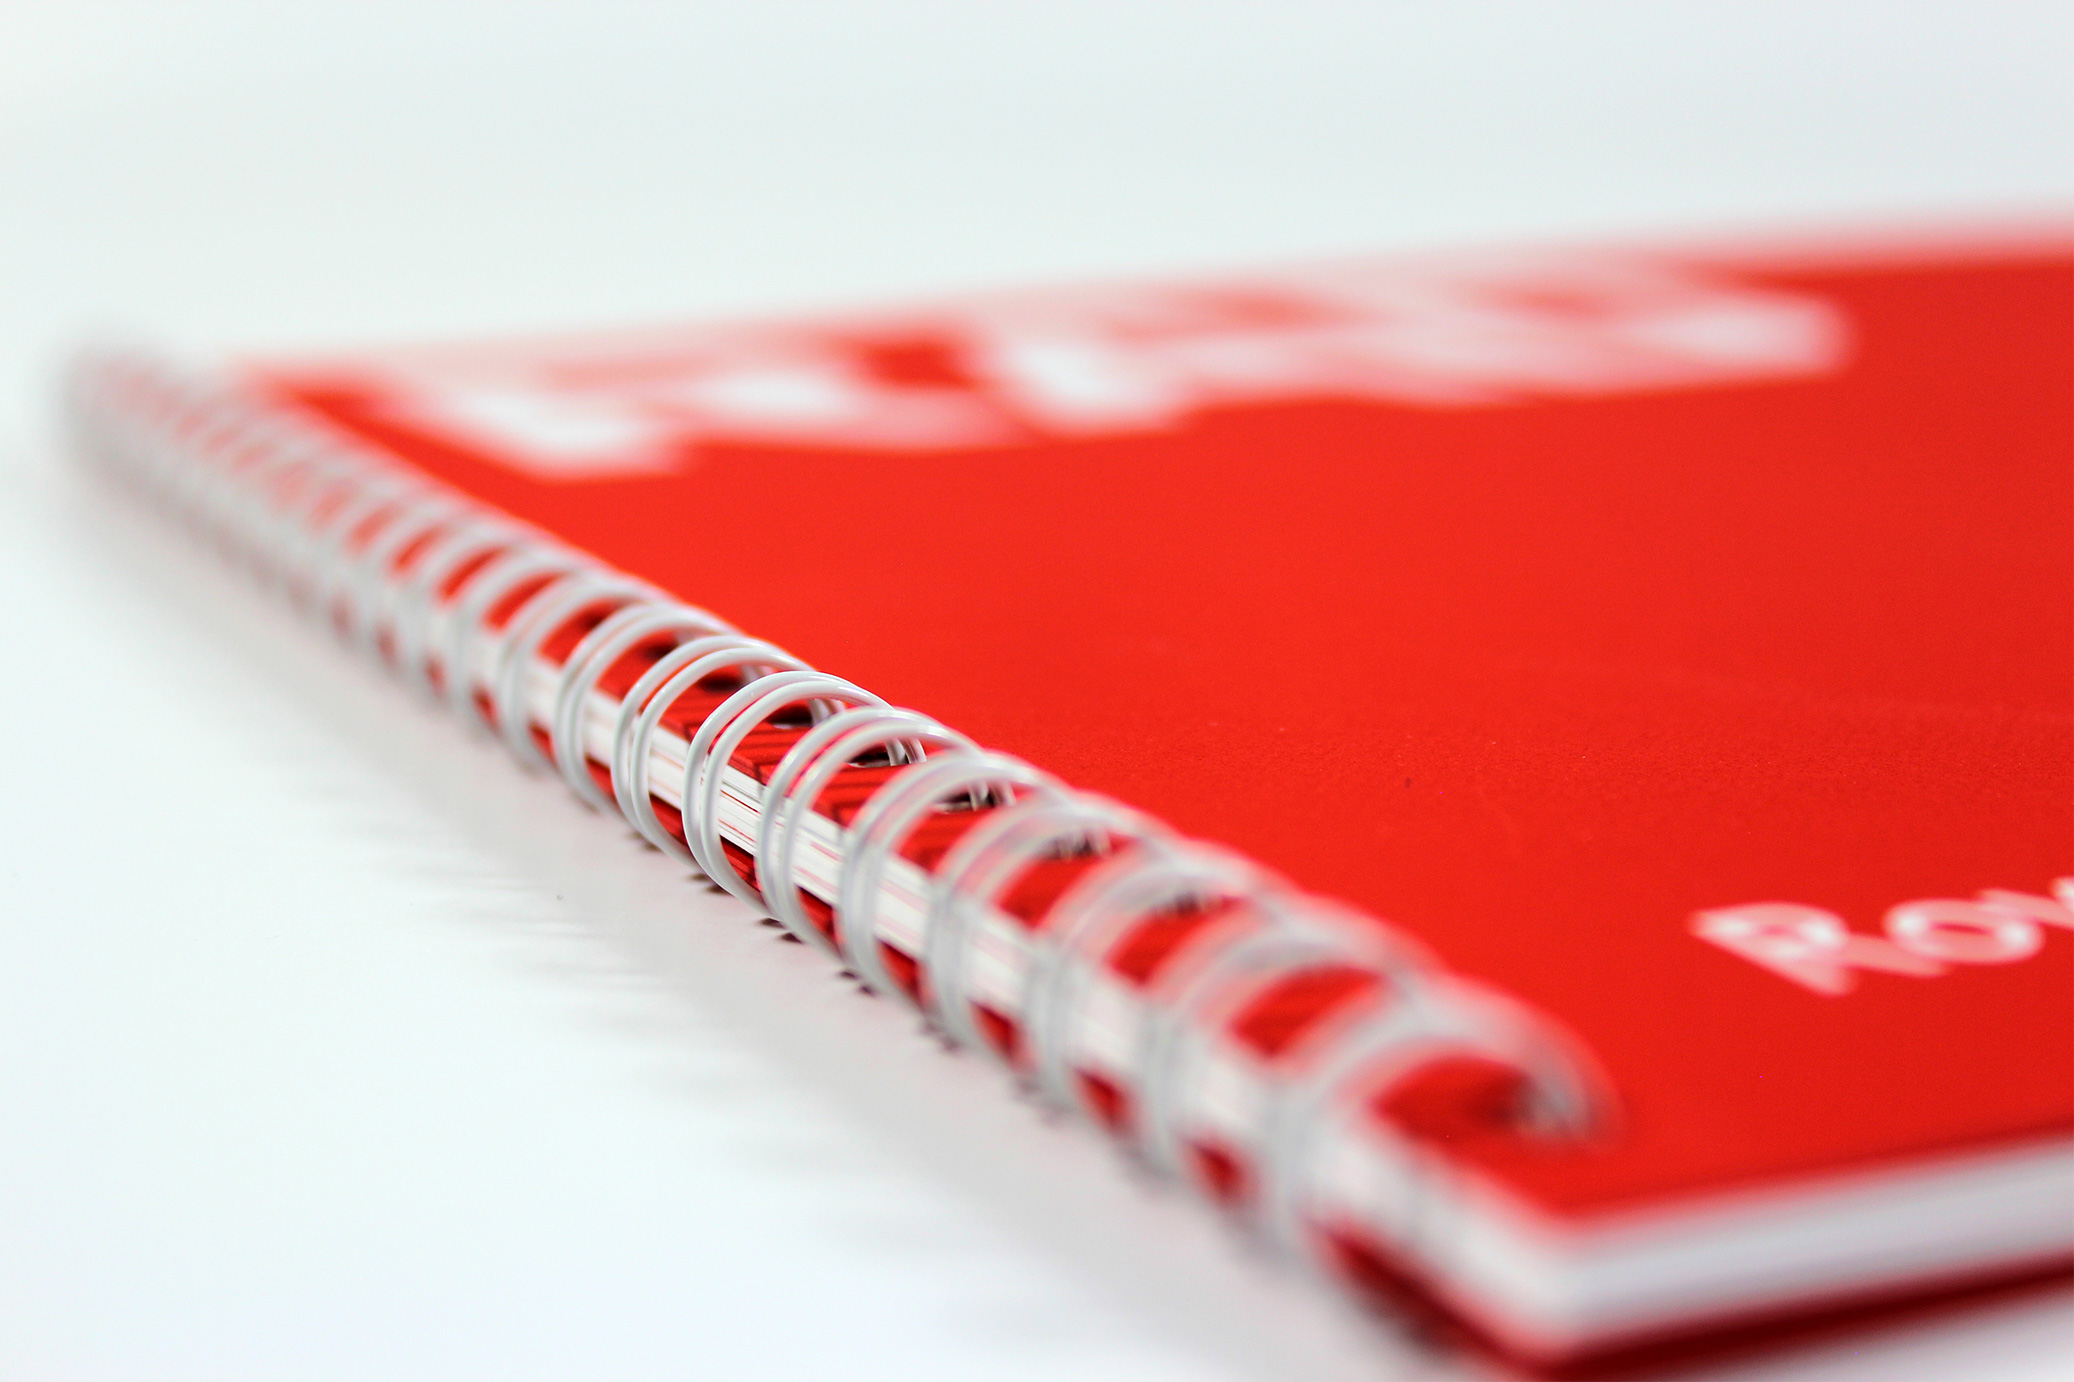 Printed Wiro-bound corporate promotional brochure for RAD - close-up showing the wiro-binding and red card front cover